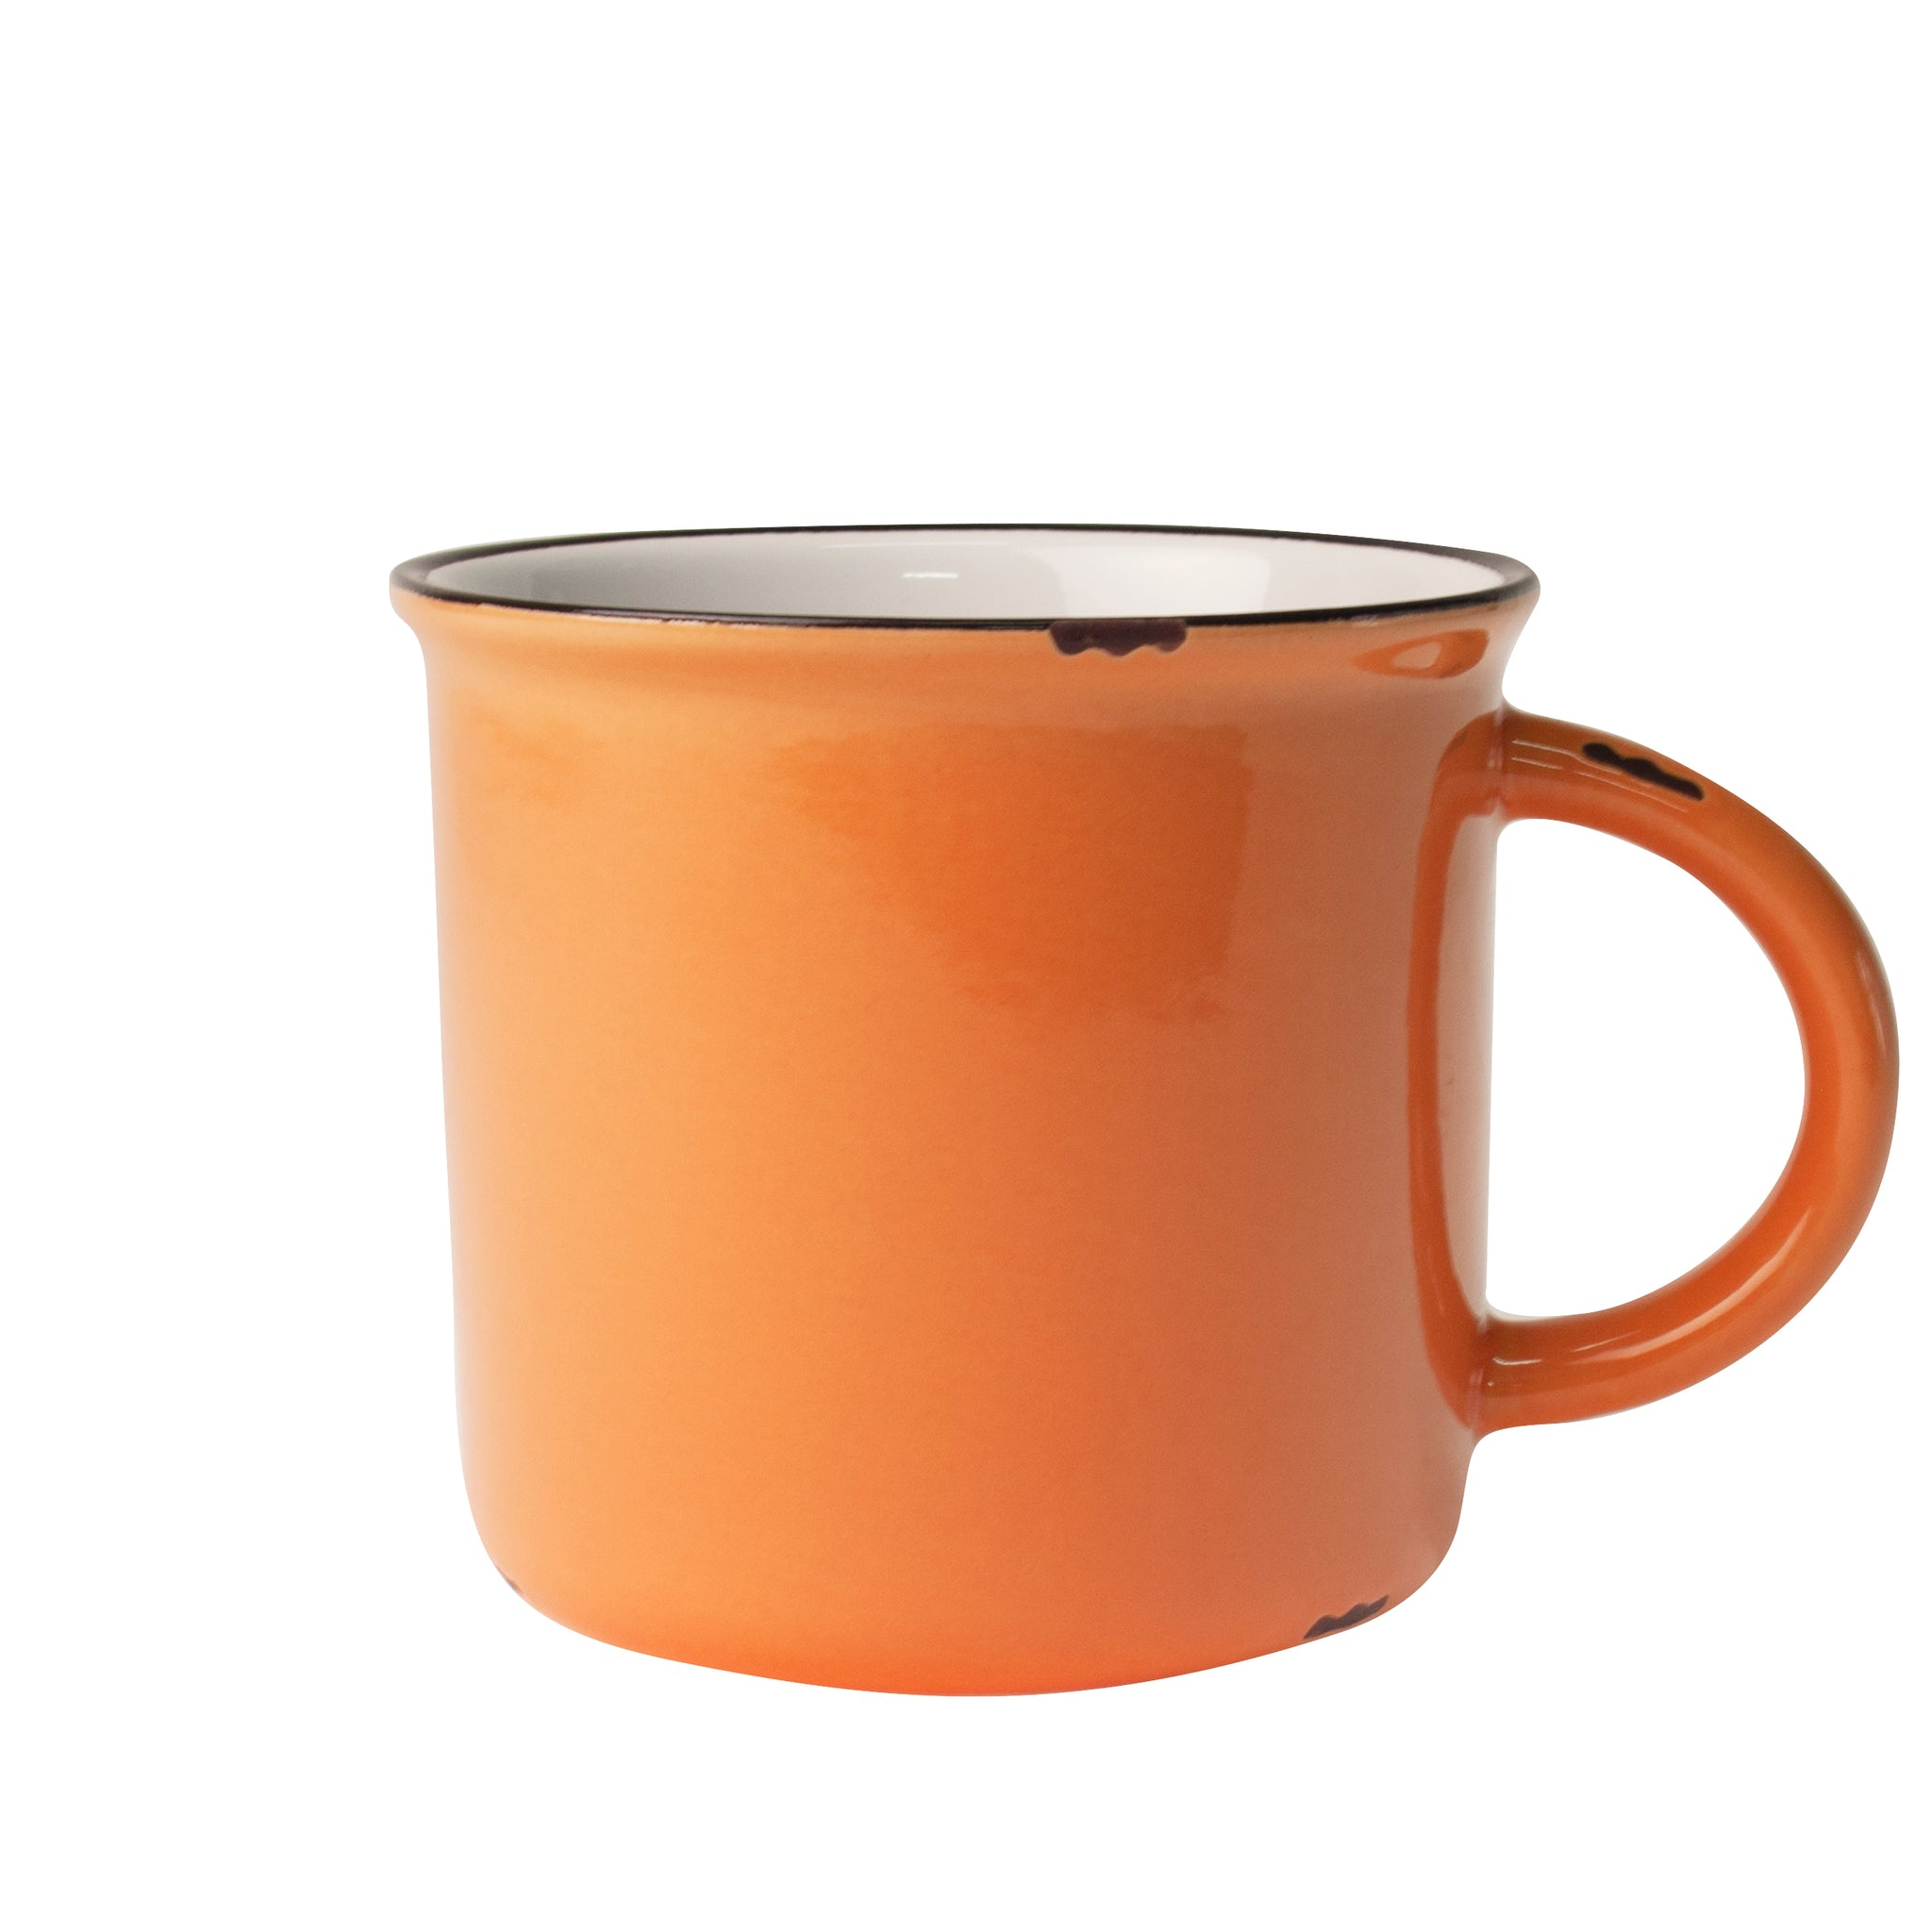 Tinware Mug in Burnt Orange - Set of 4